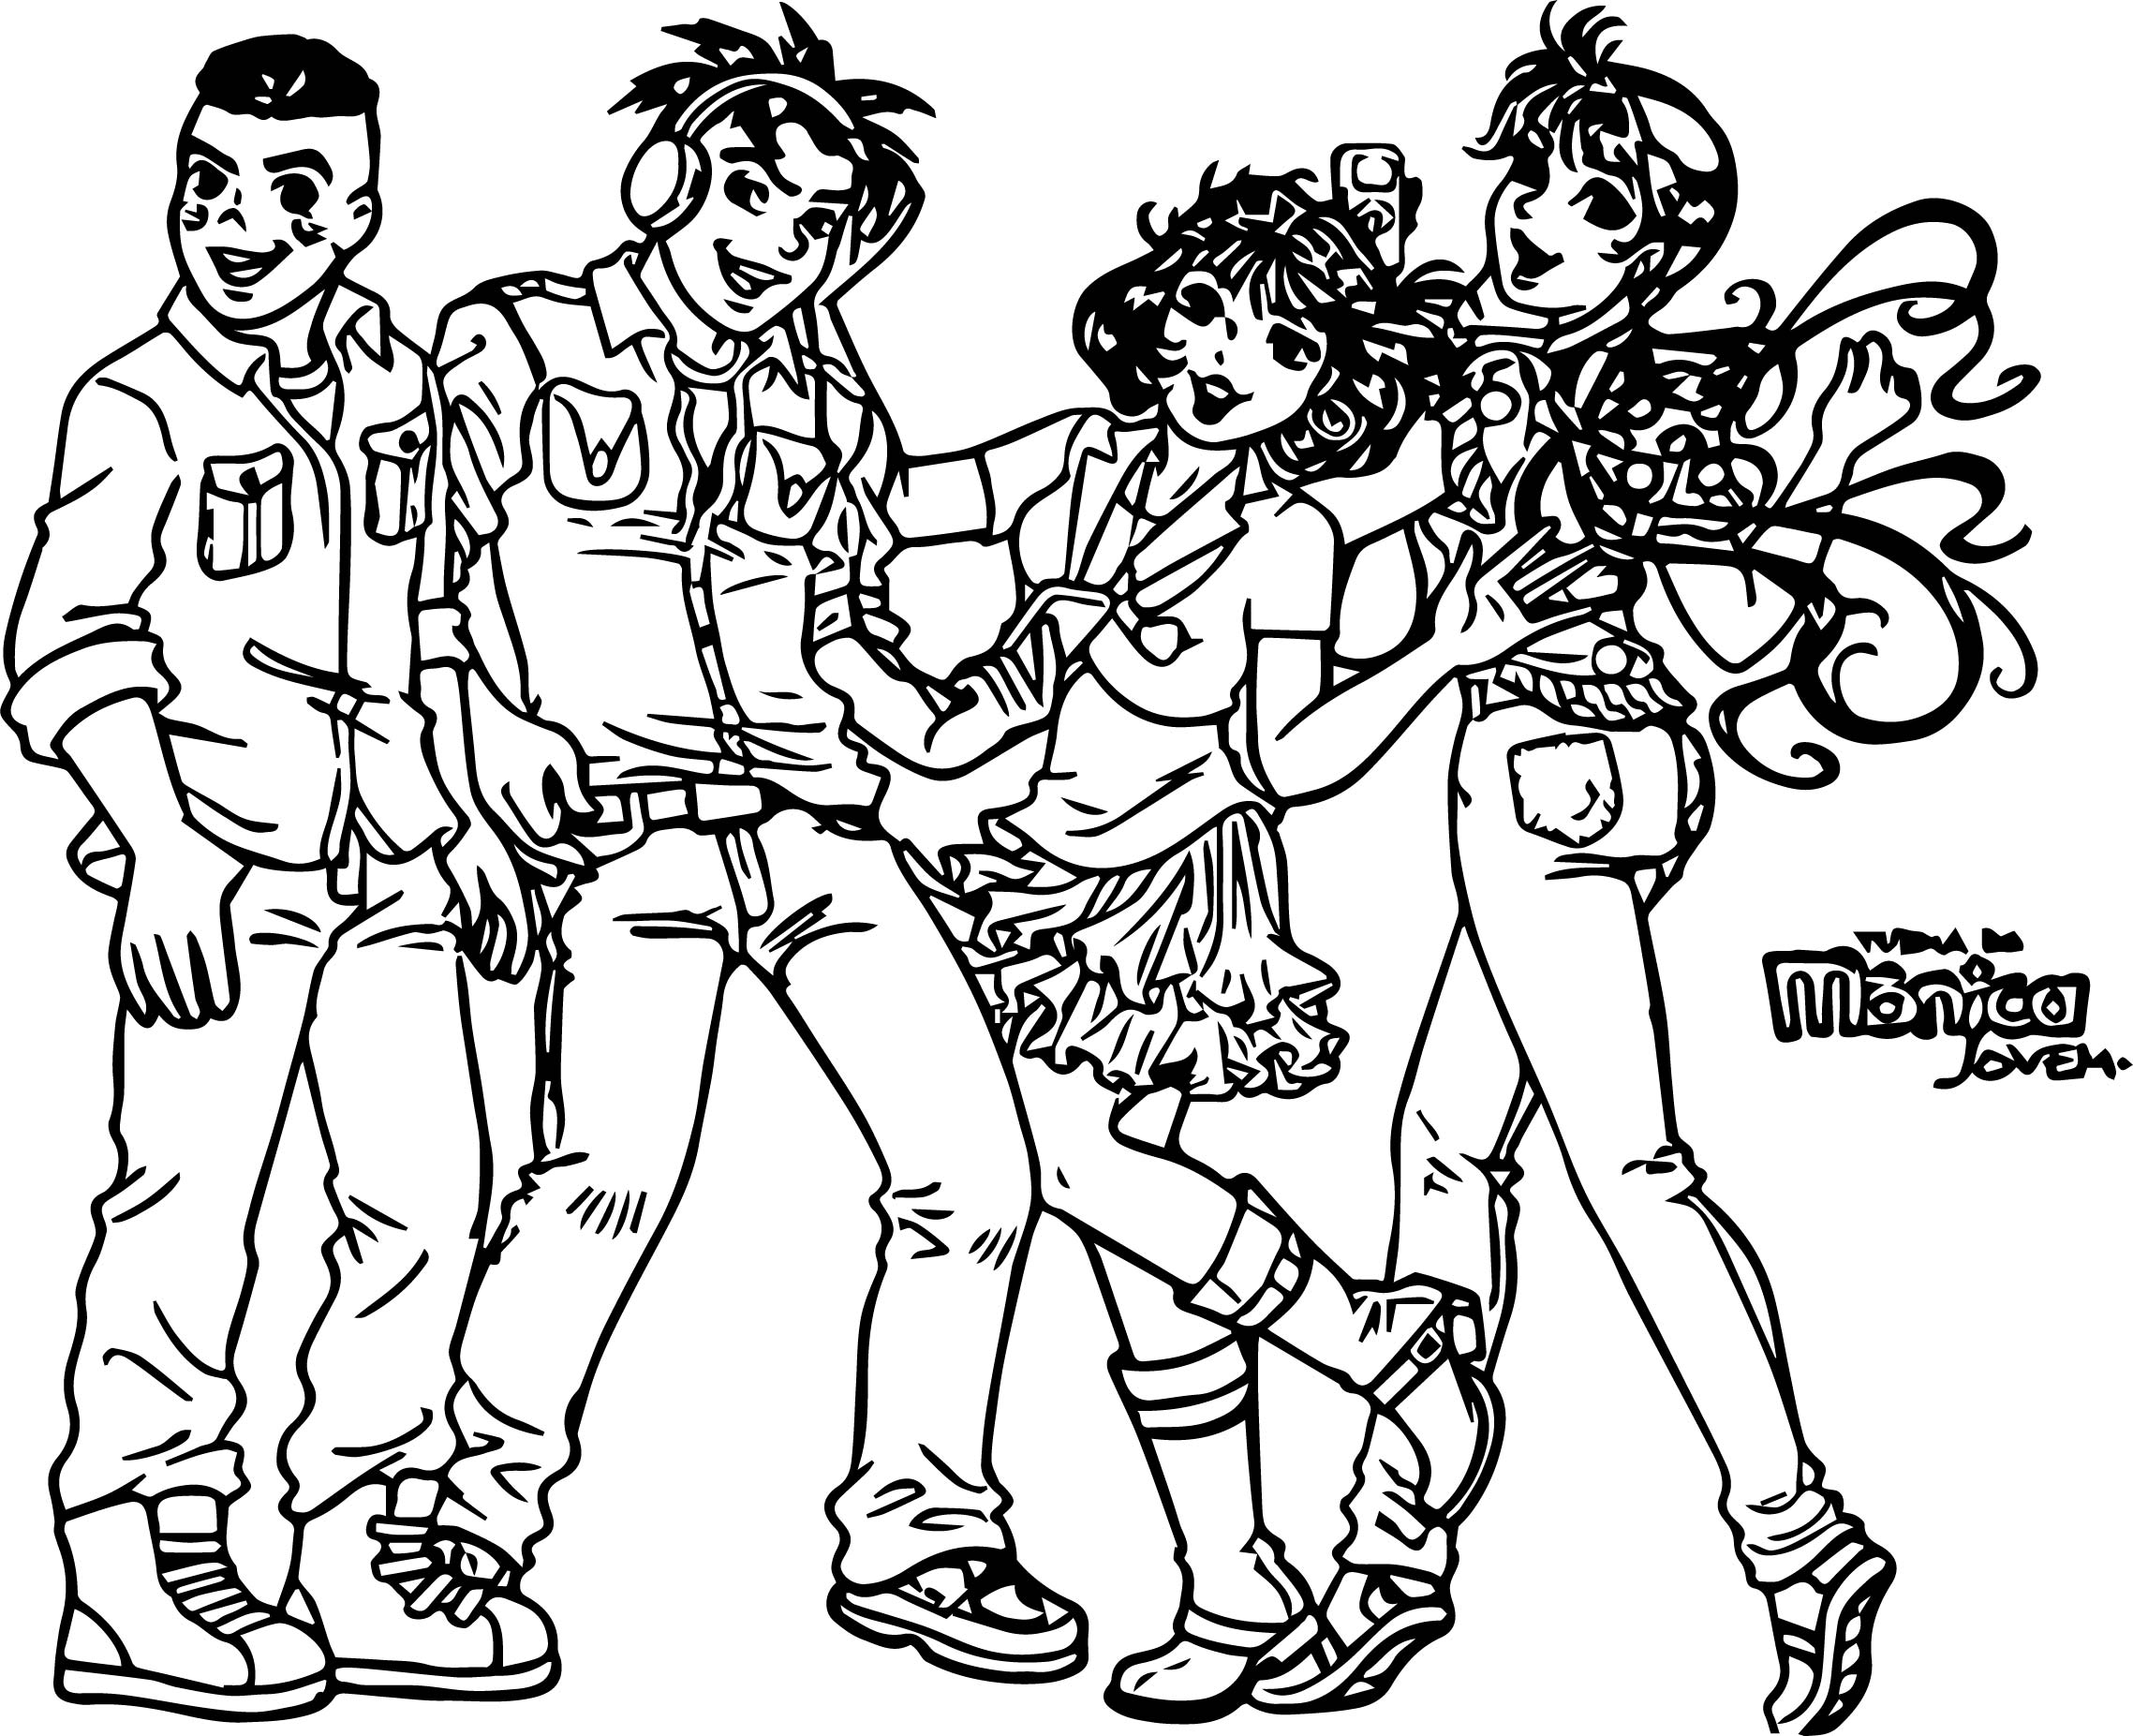 Fanfiction Turma Da Monica Young Ask To A Tmj Coloring Page